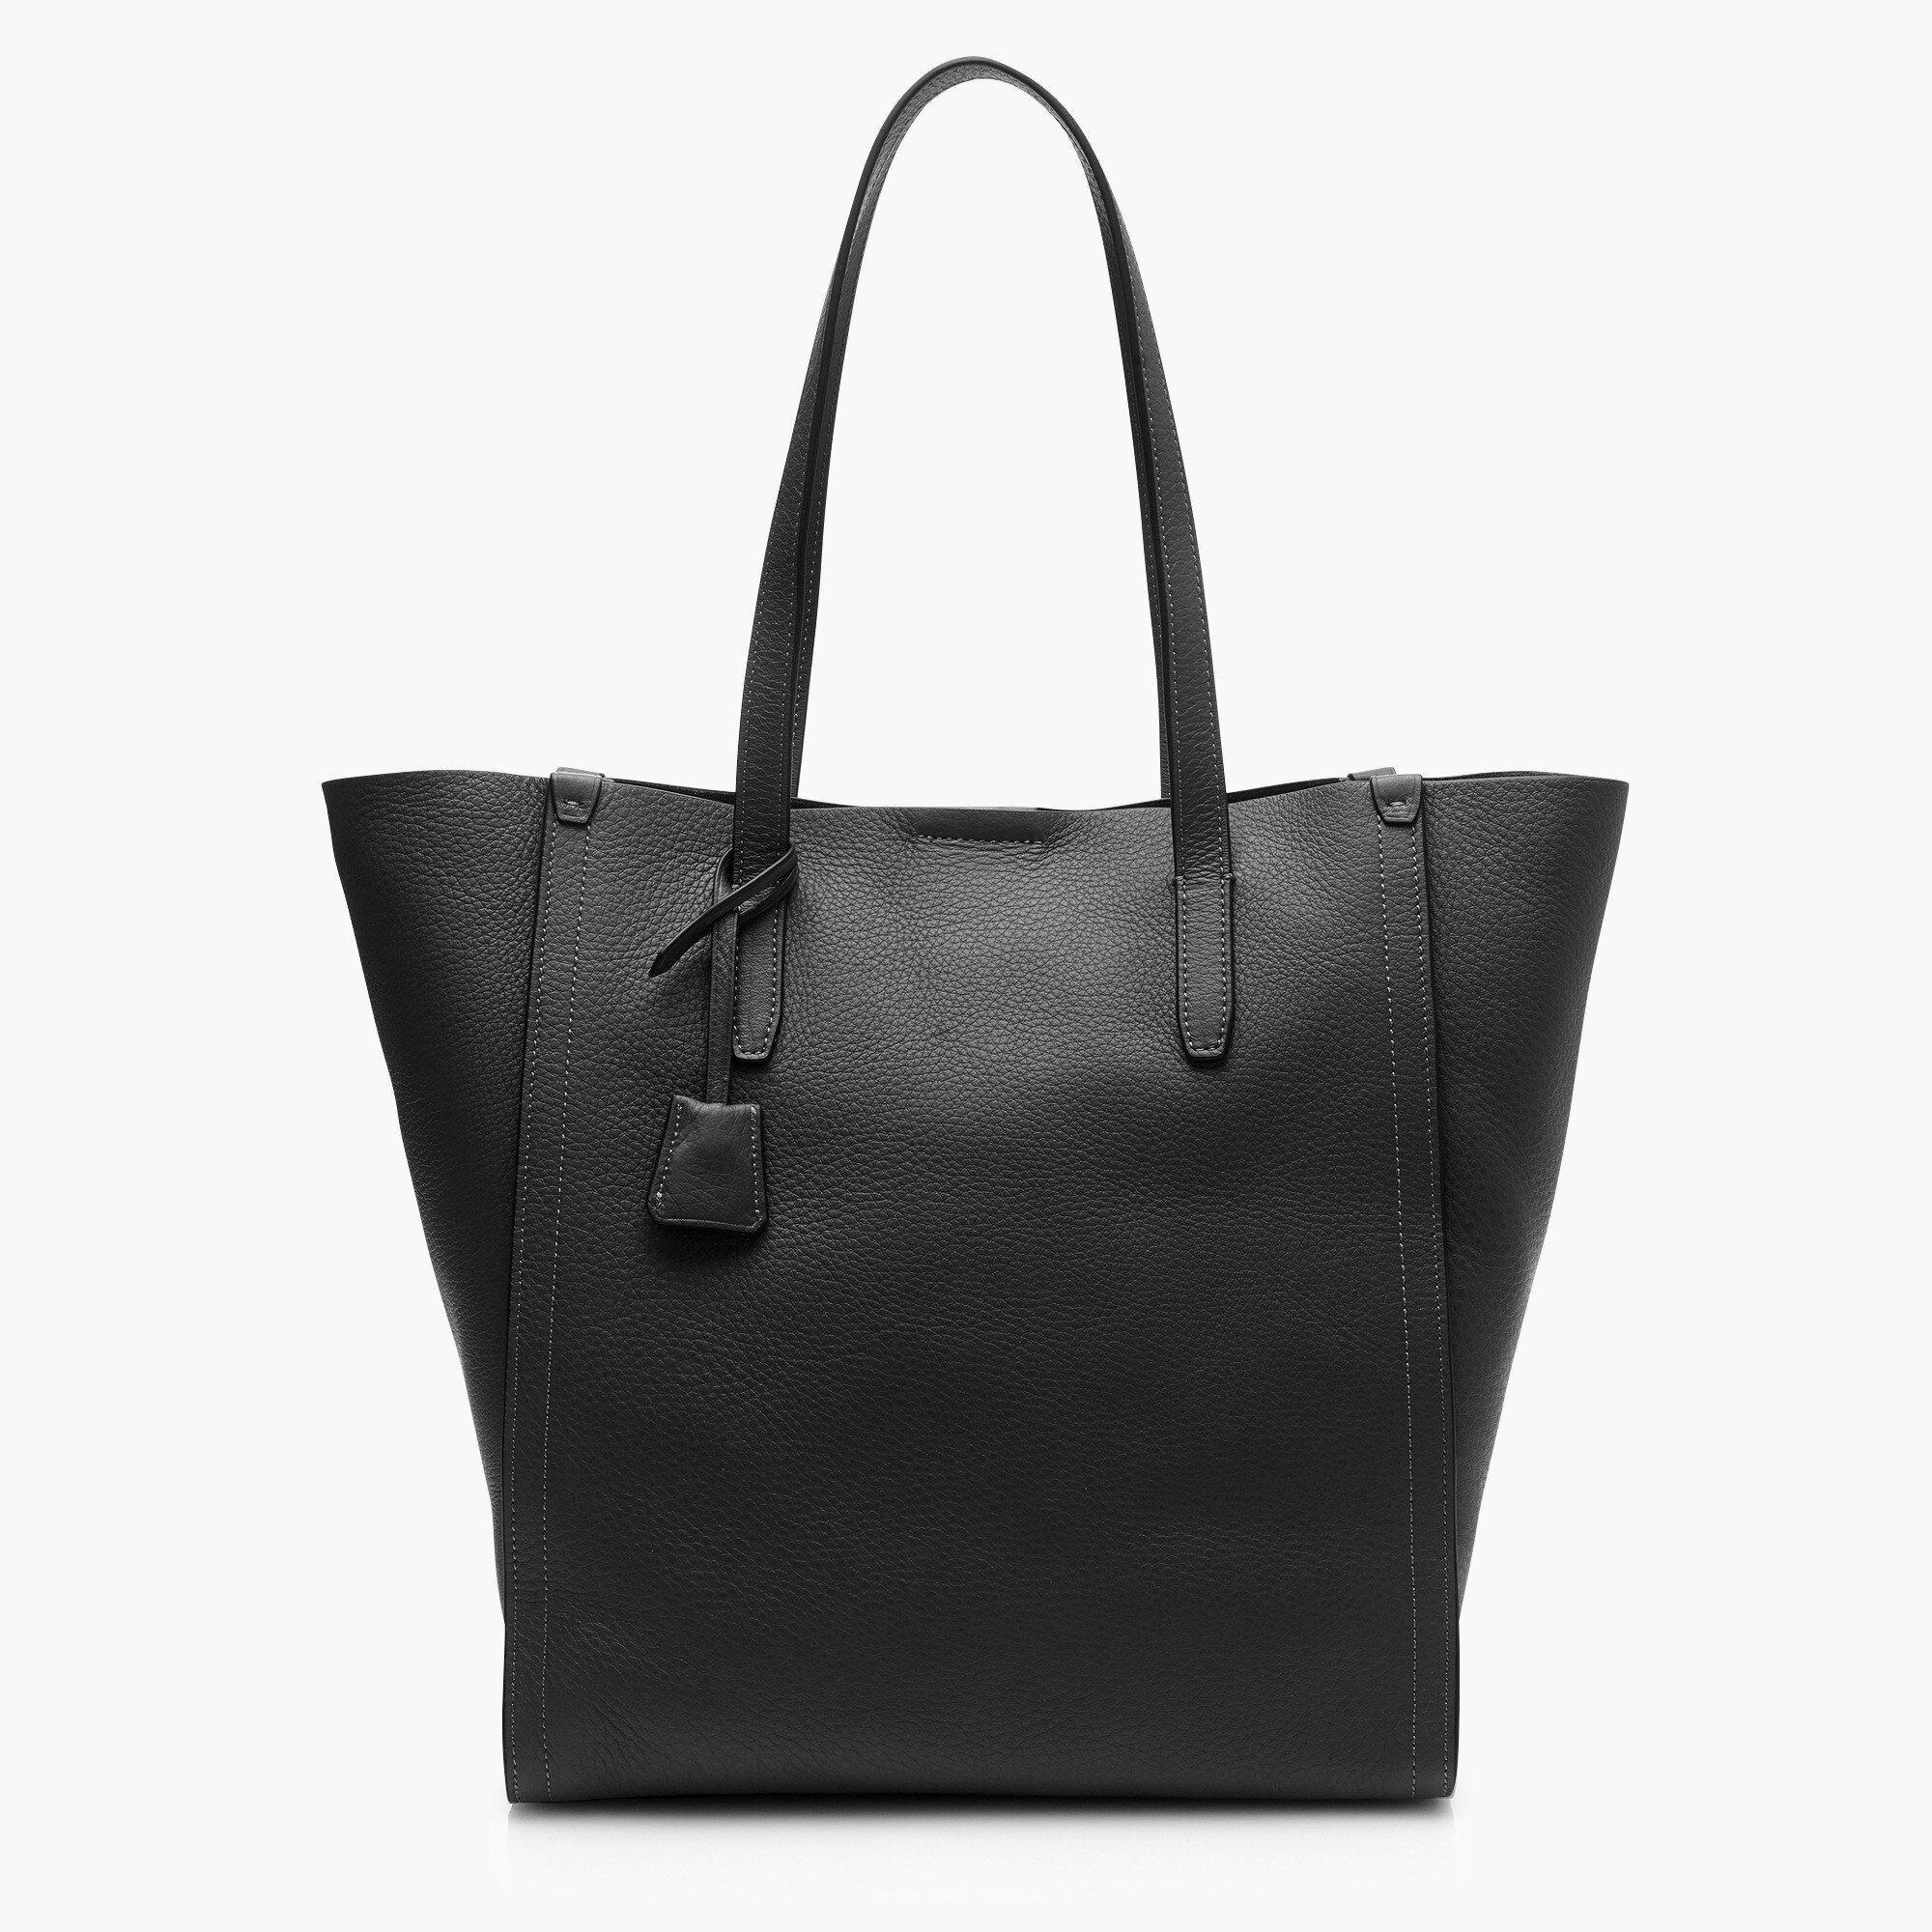 Signet tote bag in Italian leather women bags c